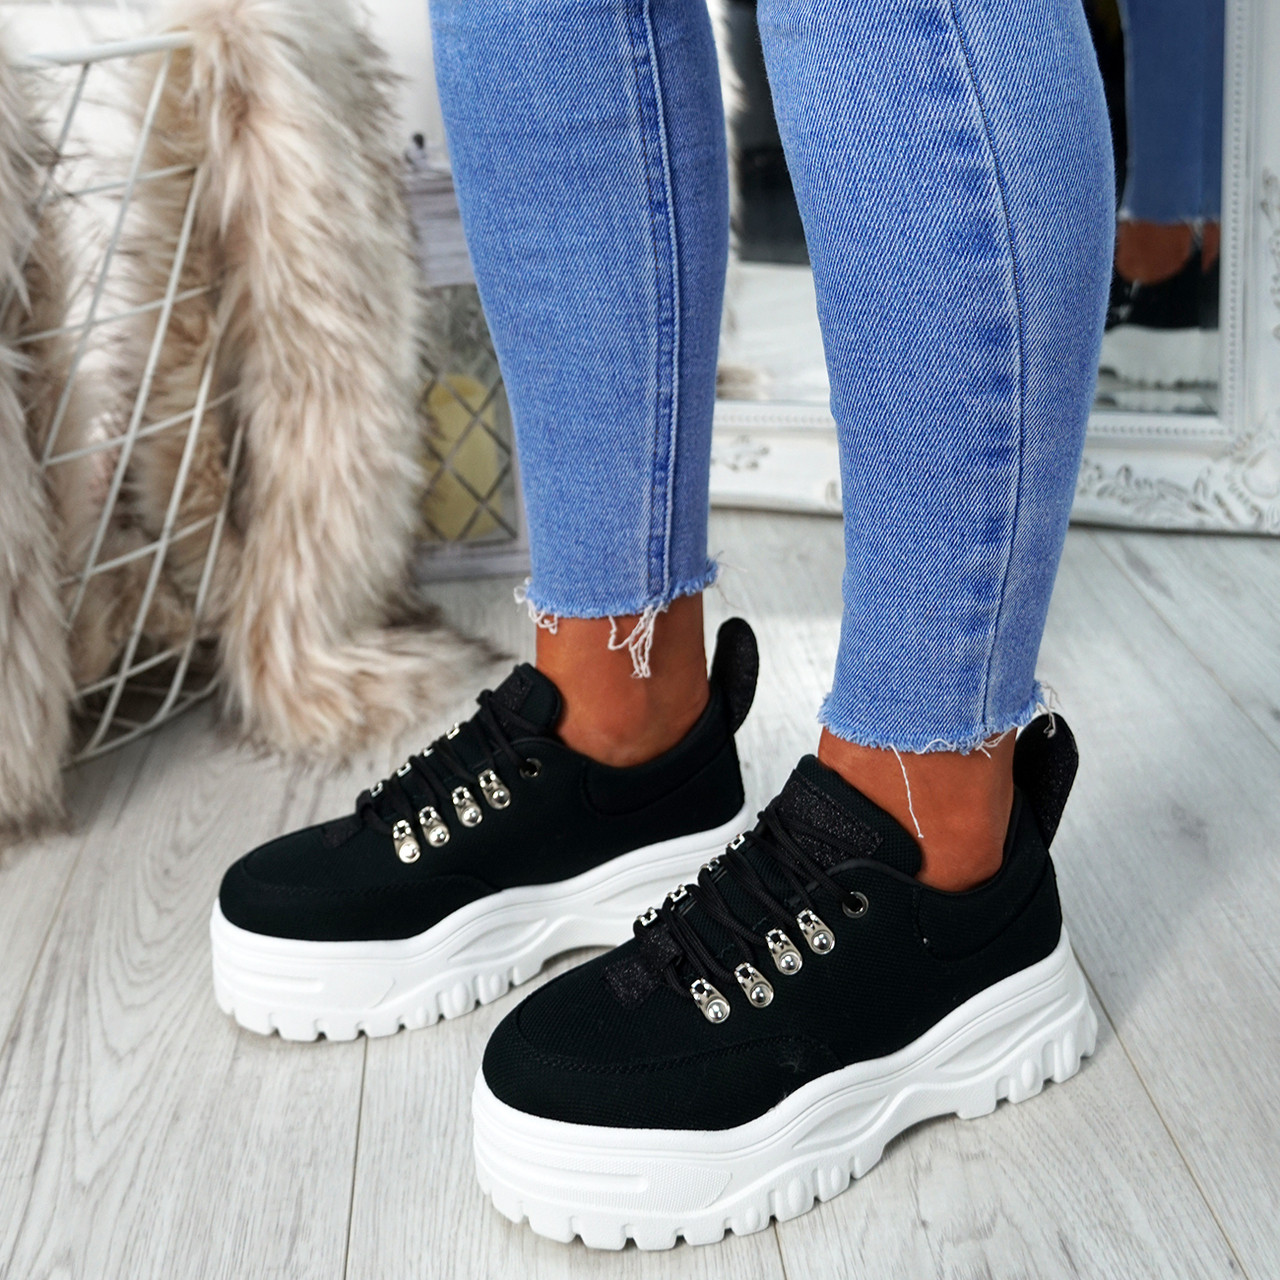 472367f36dc Womens Ladies Platform Trainers Lace Up Sneakers Plimsolls Comfy Fashion  Shoes